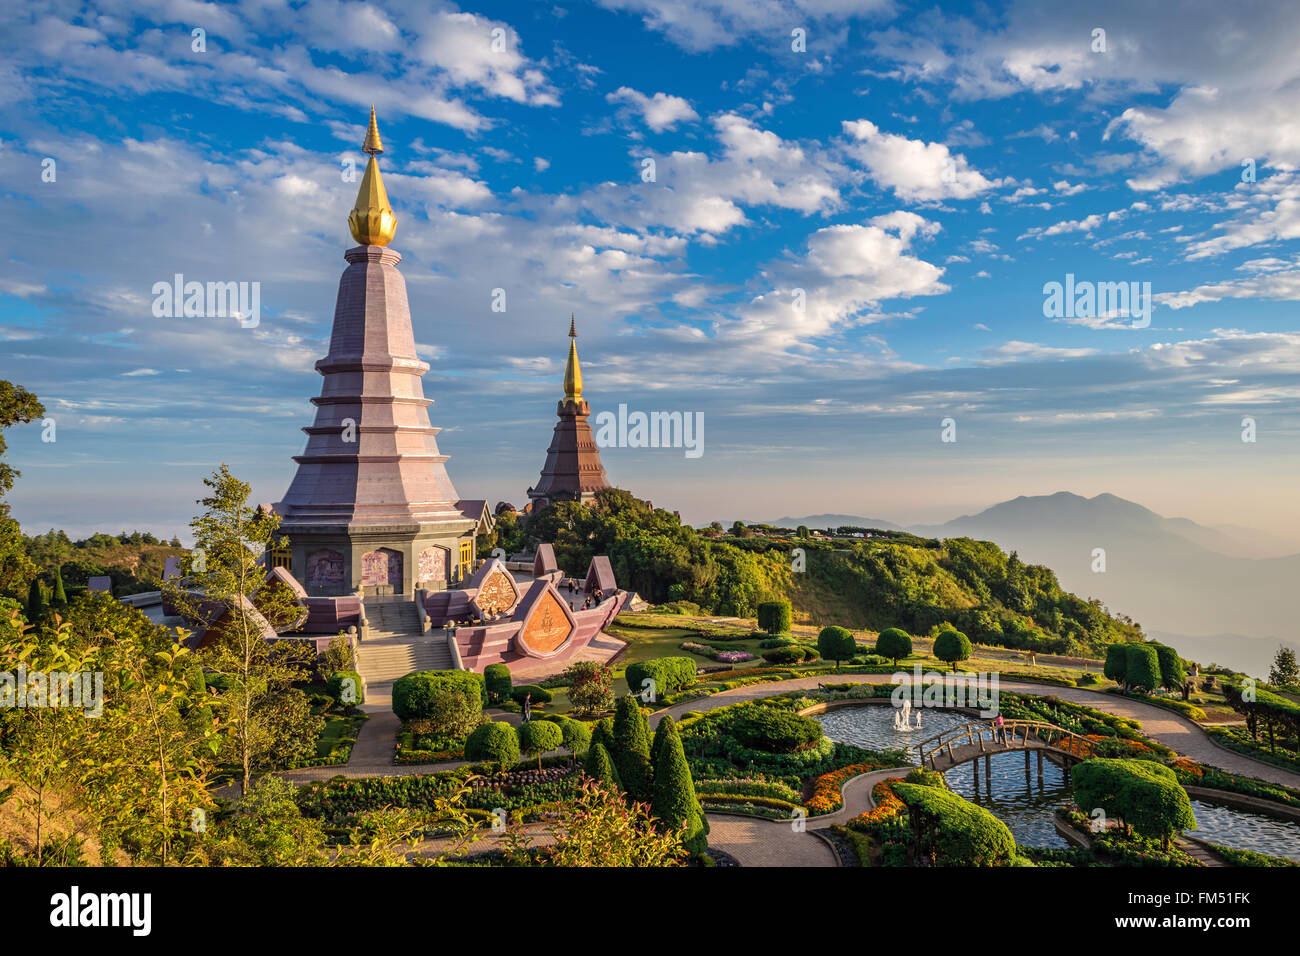 Sunset at Doi Inthanon, Chiang mai, Thailand - Stock Image